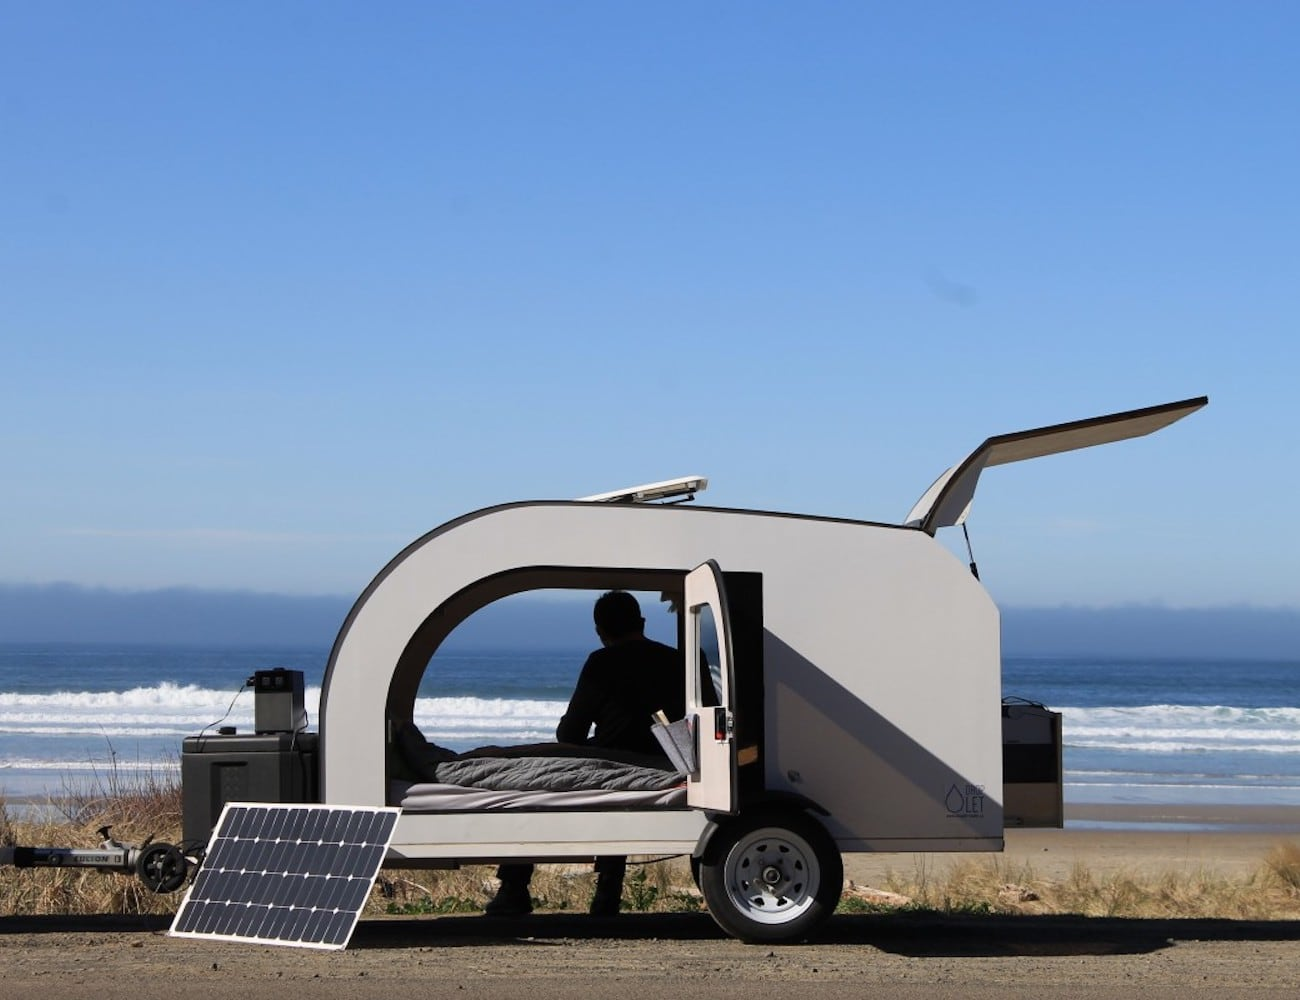 Droplet Teardrop Camping Trailer